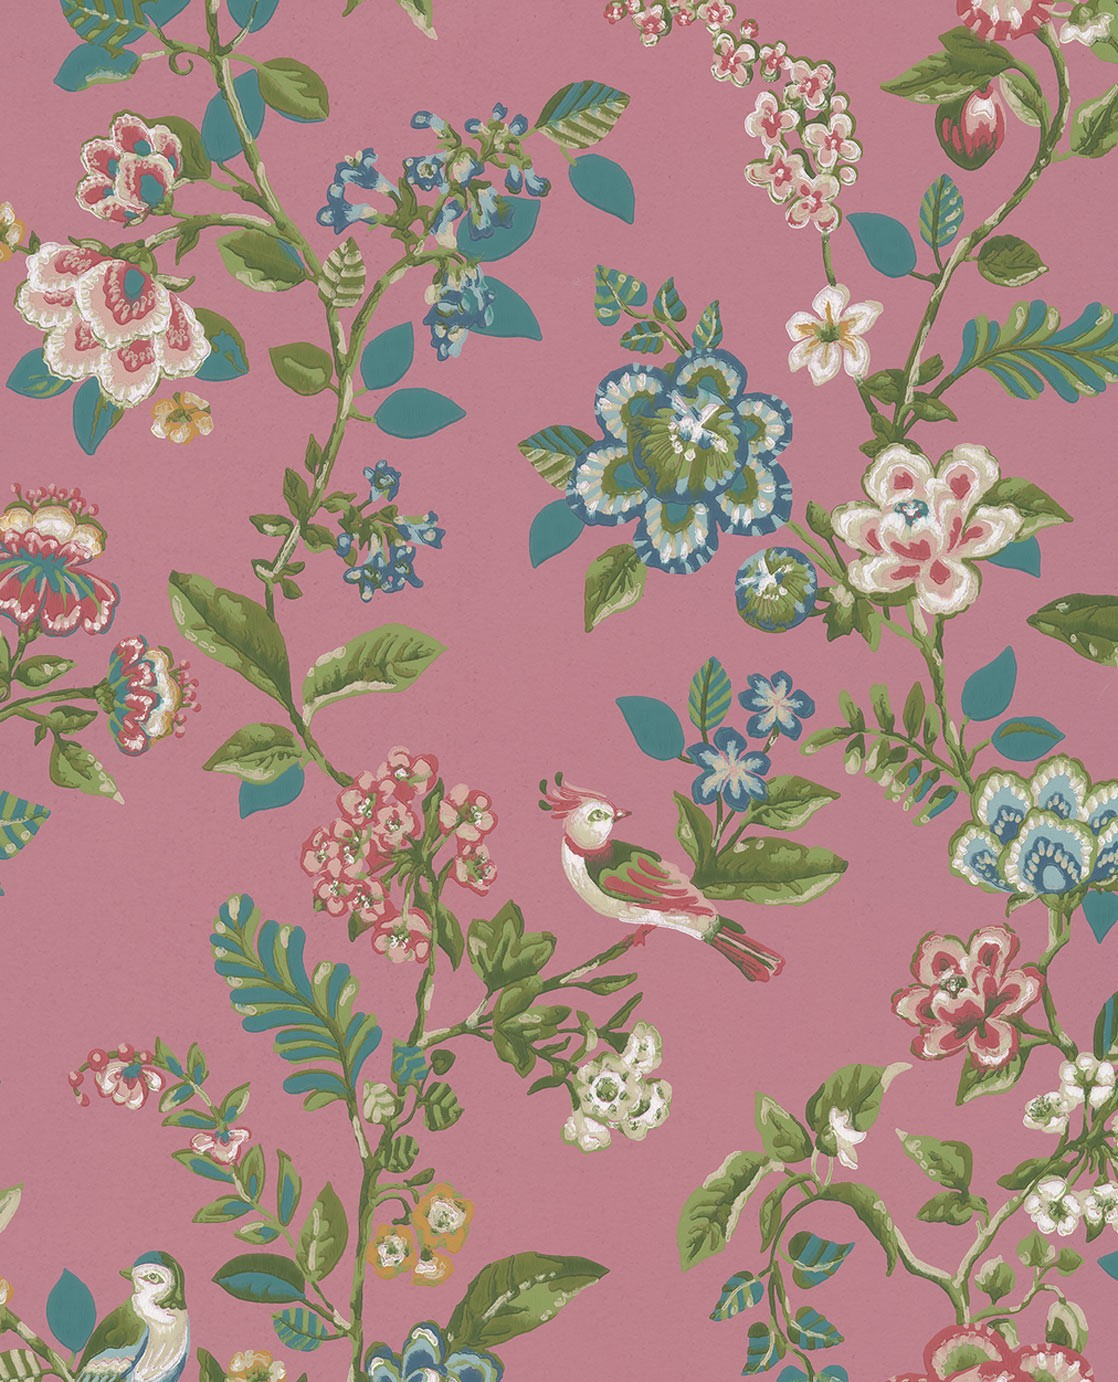 https://www.pipstudio.com/botanical-print-wallpaper-dark-pink